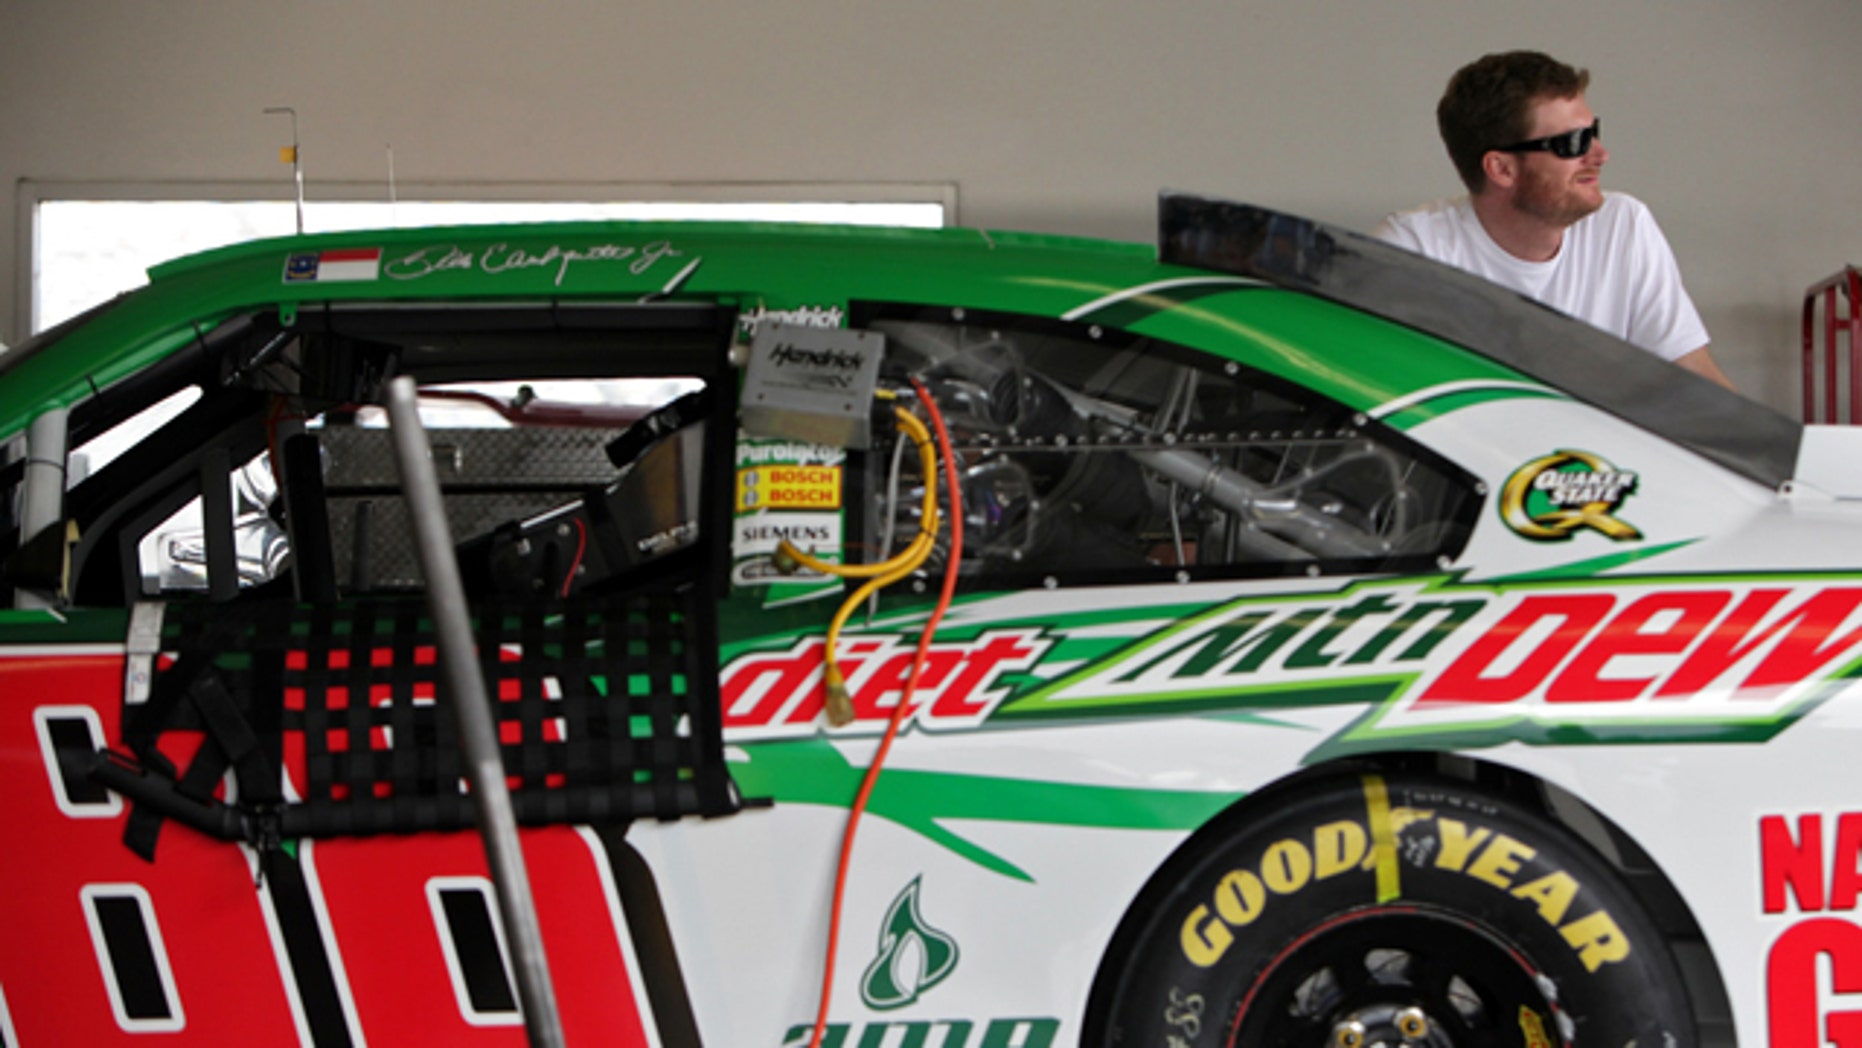 Dale Earnhardt Jr. peers out of the garage during NASCAR fuel-injection system testing at Daytona International Speedway in Daytona Beach, Fla., Tuesday, Nov. 15, 2011. (AP Photo/Daytona Beach News-Journal, Sean McNeil)